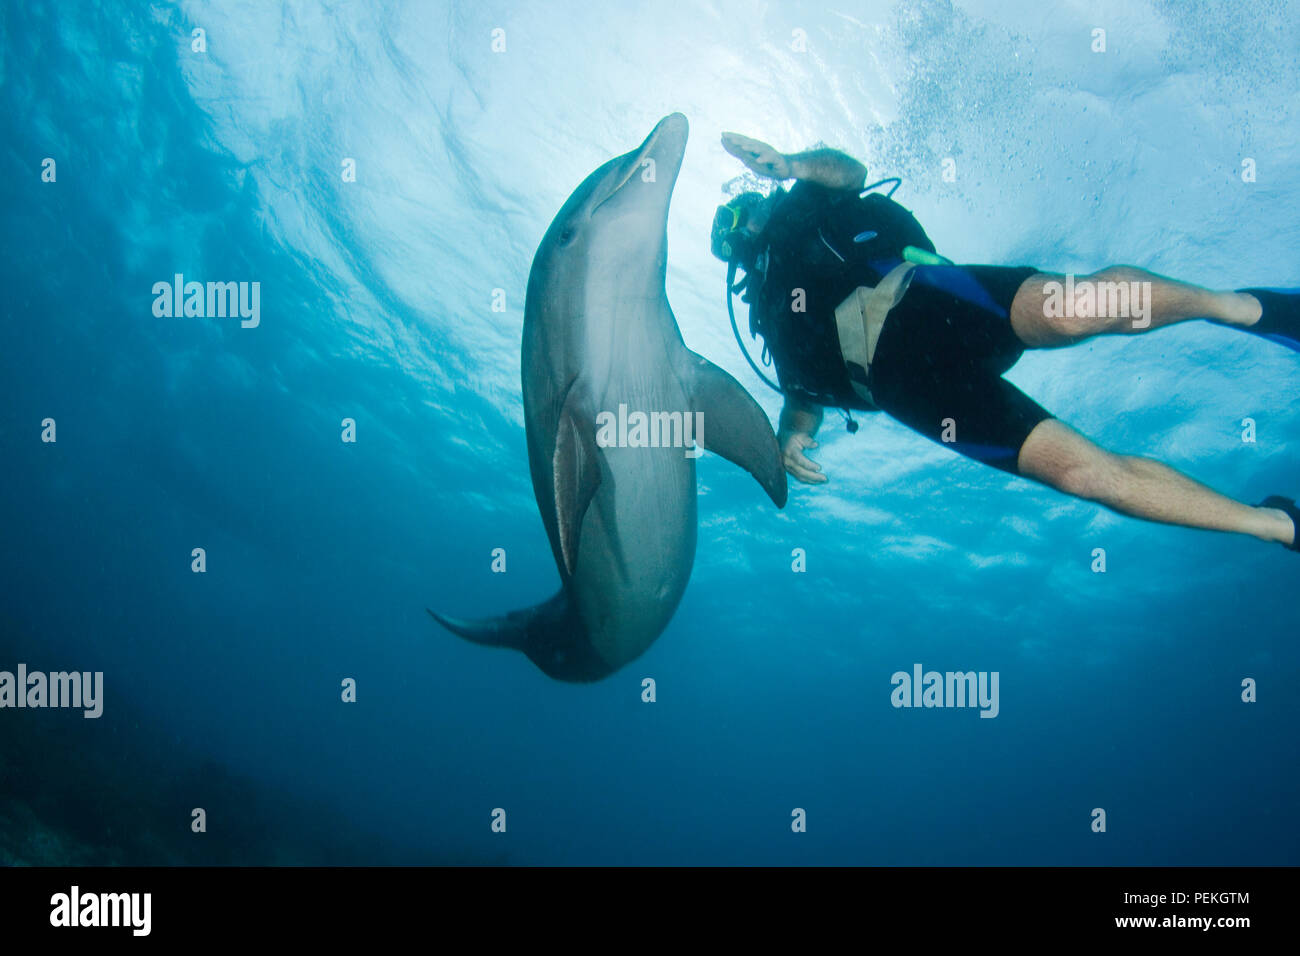 Diver (MR) and bottlenose dolphin, Tursiops truncatus, on the reef outside The Curacao Sea Aquarium, Curacao, Caribbean. - Stock Image